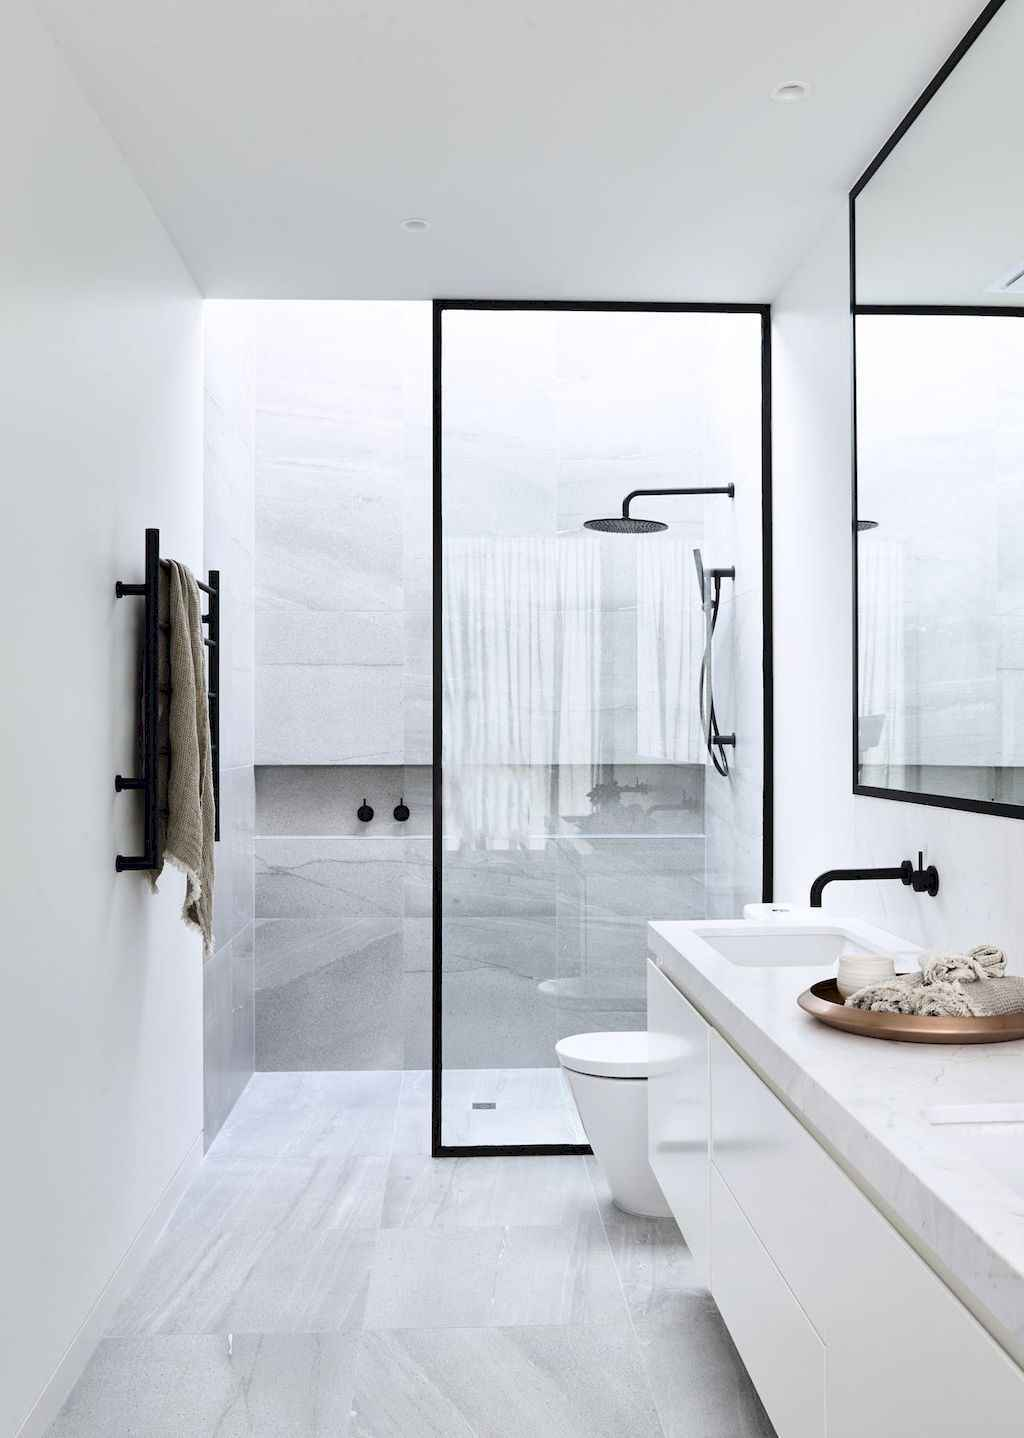 111 awesome small bathroom remodel ideas on a budget (28)